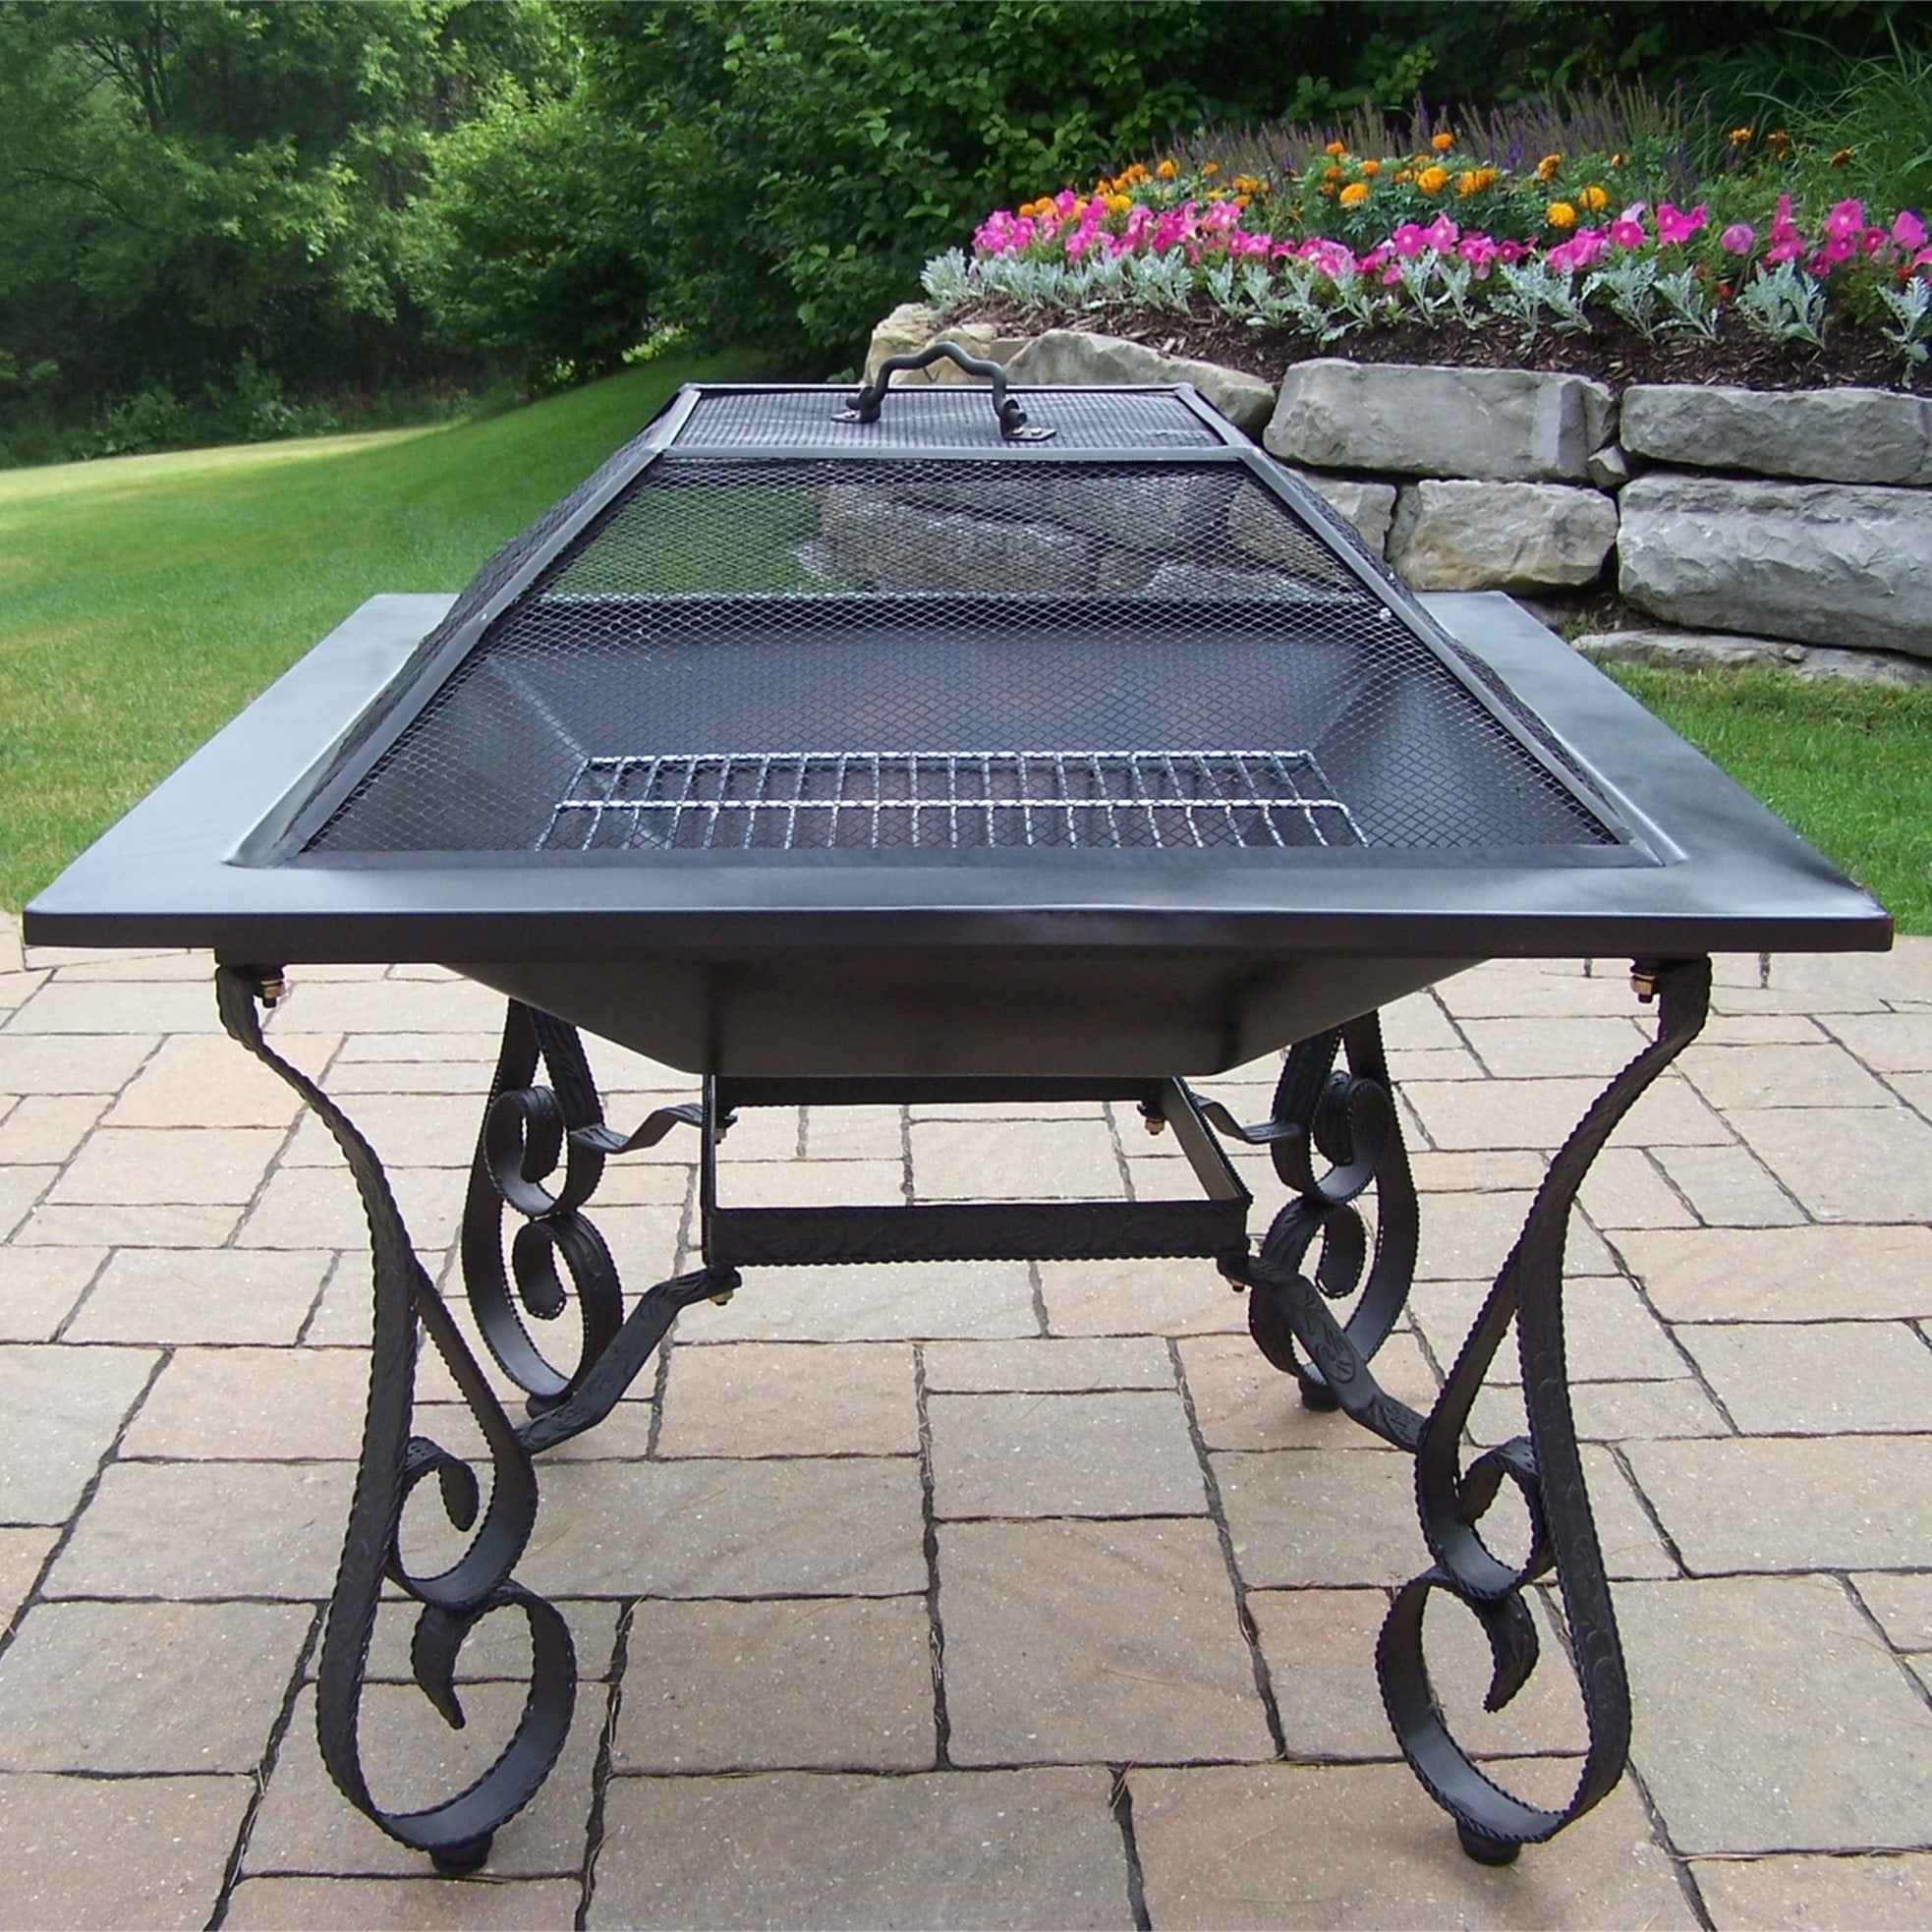 Oakland Corporation Royal Black Square Fire Pit With Spar...